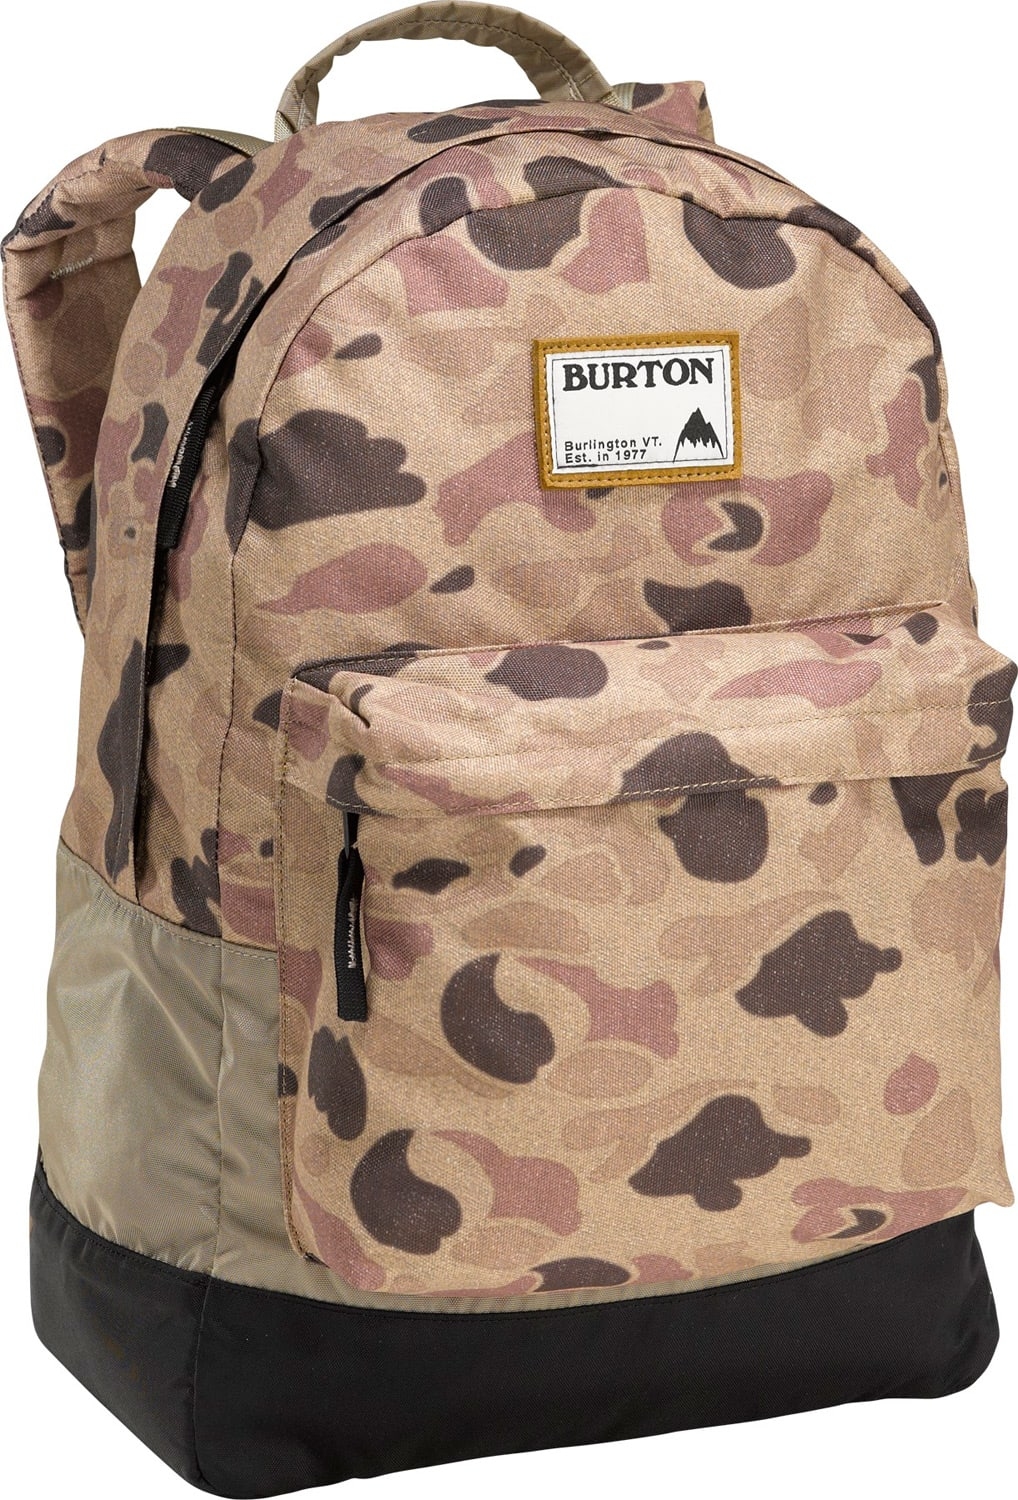 Burton Kettle Backpack Duck Hunter Camo 20L